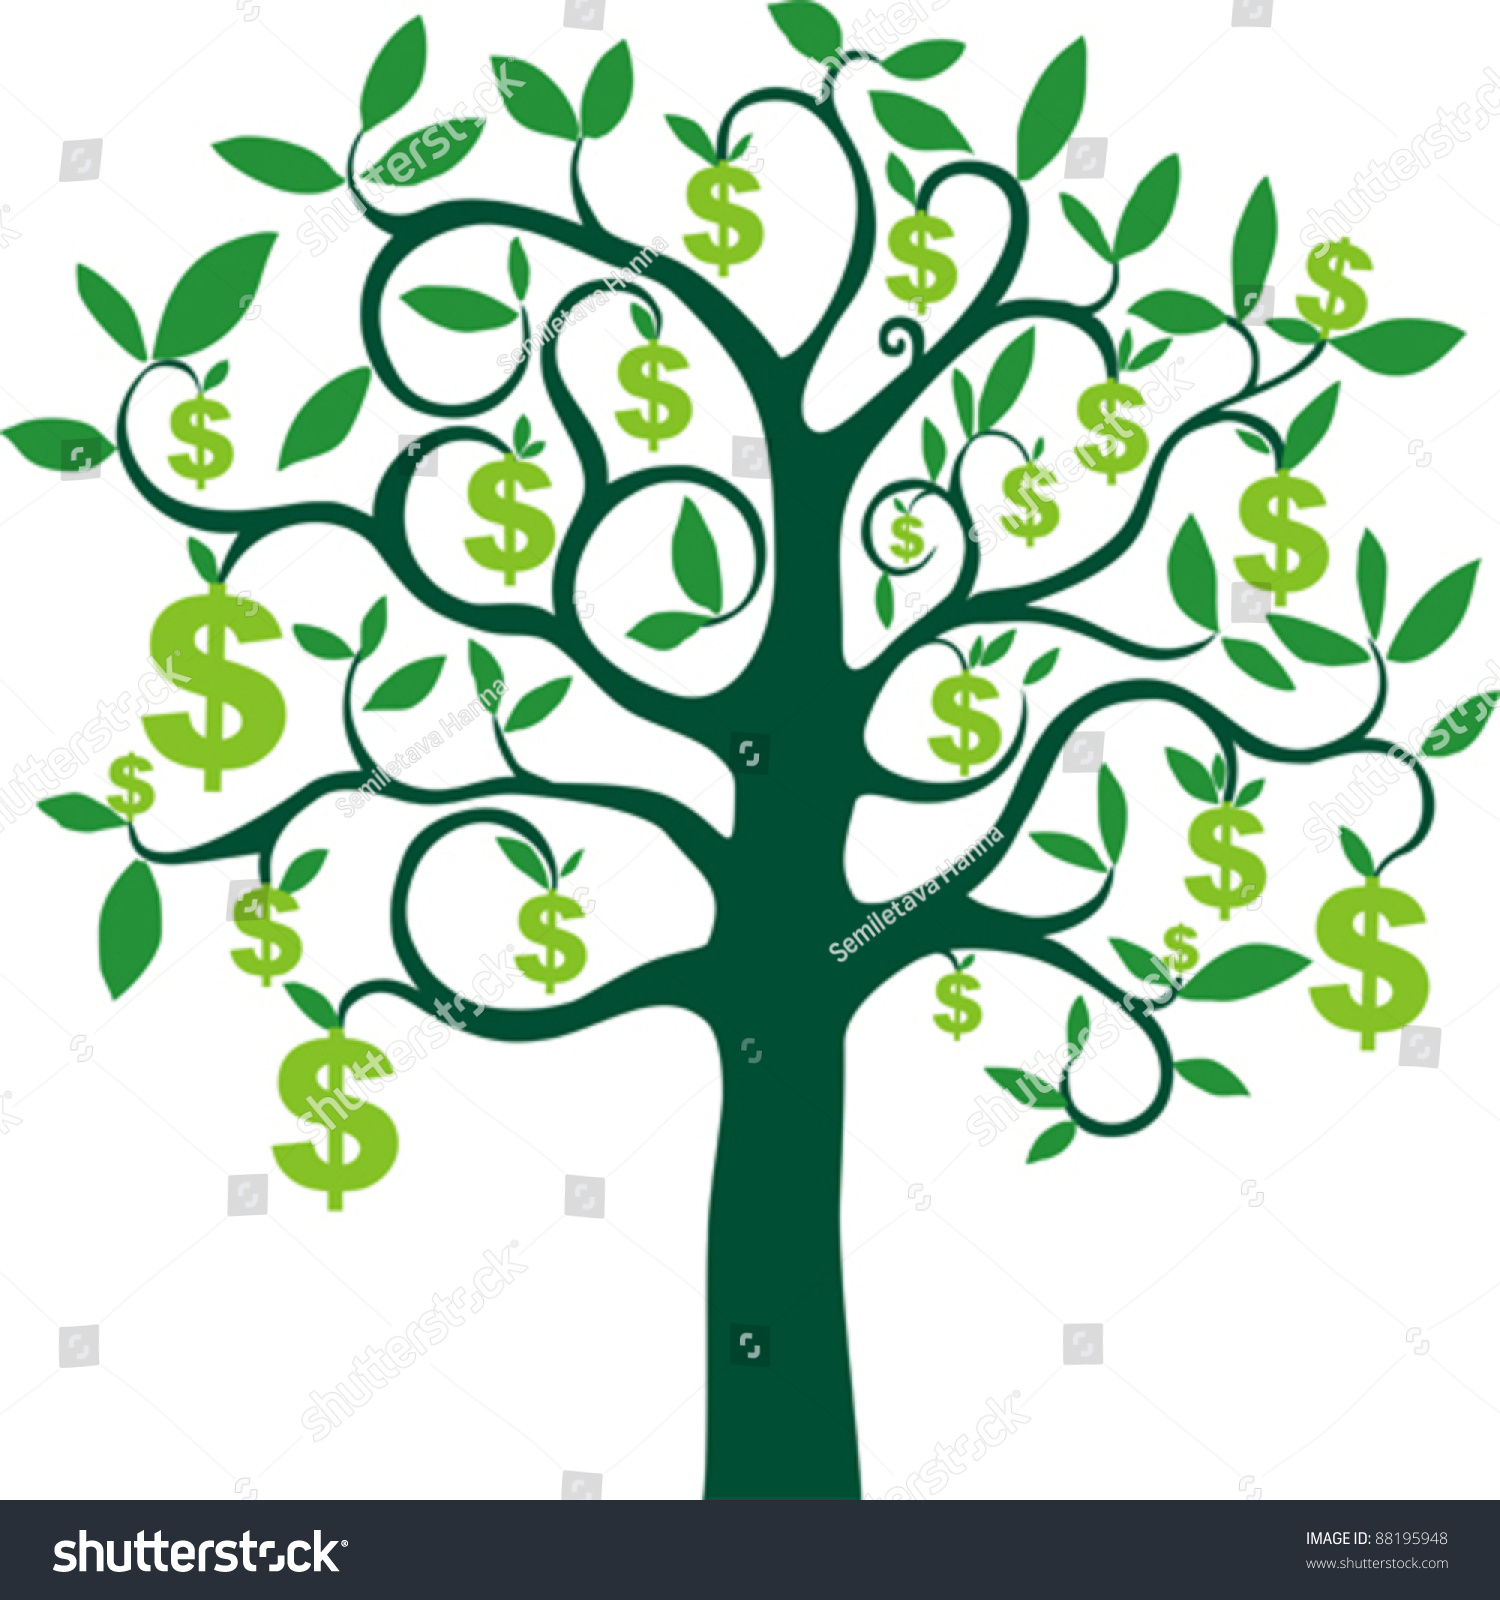 money tree isolated on white background stock vector Olive Branch Drawing Olive Branch Sketch